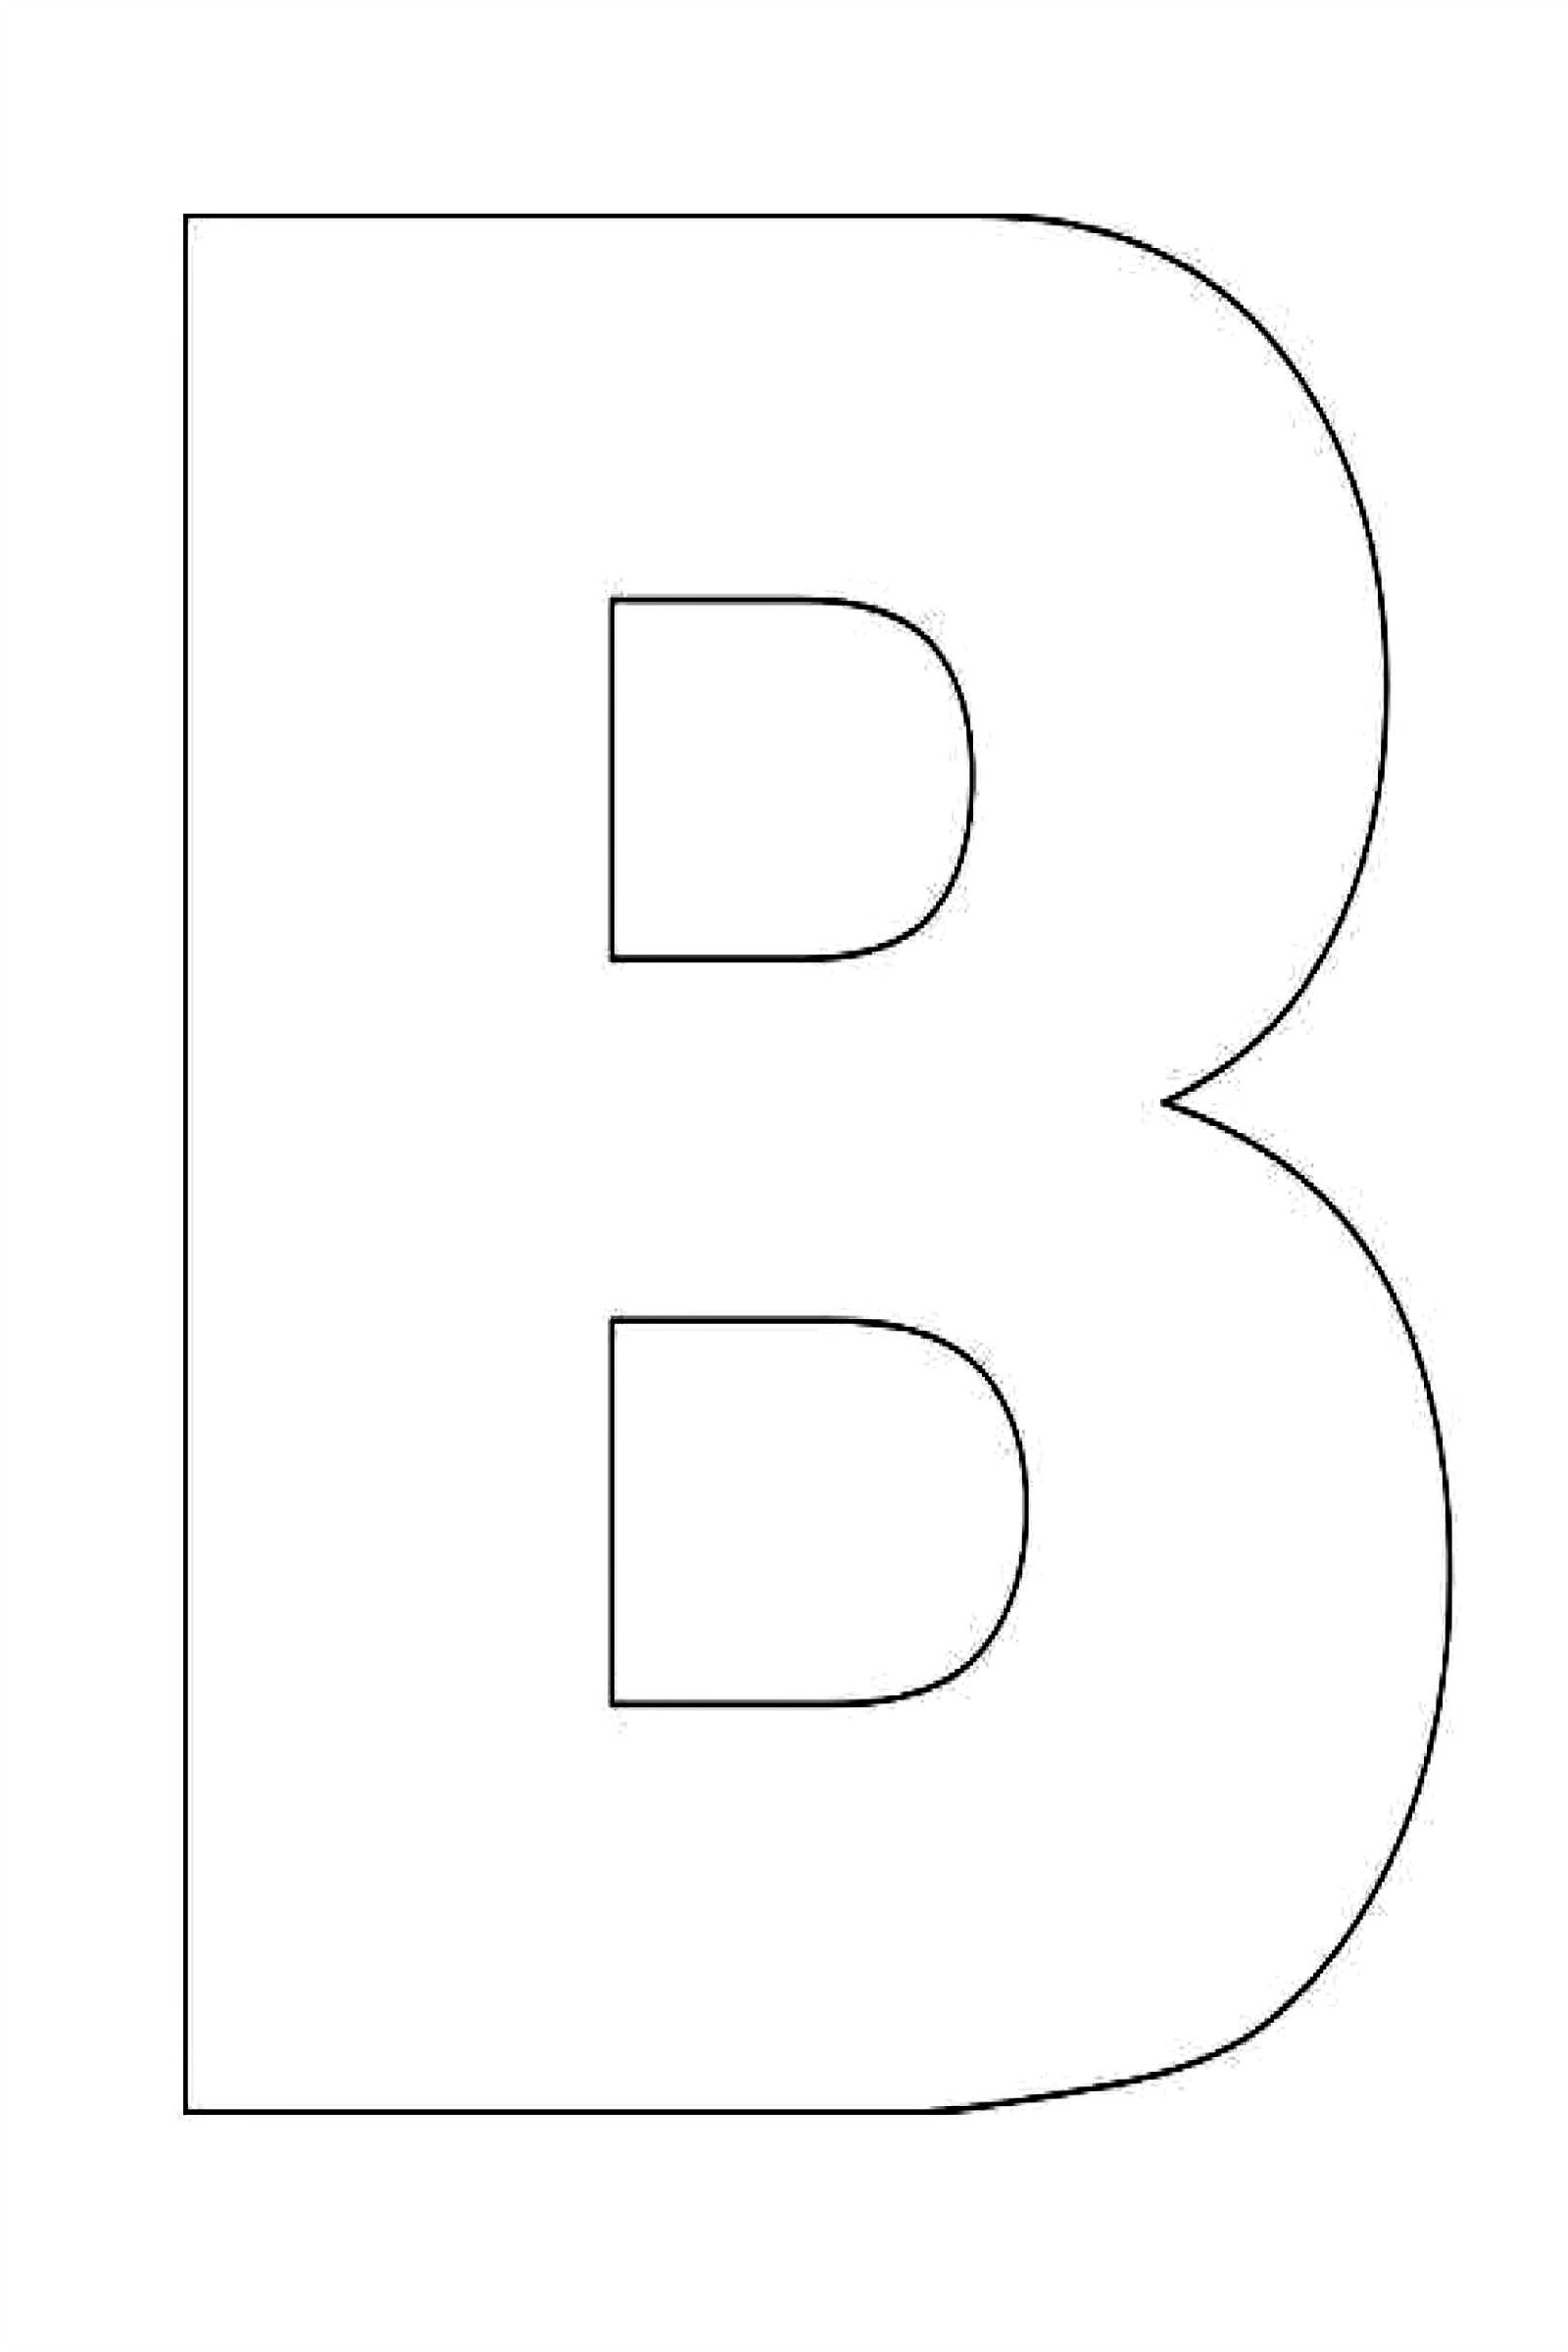 Alphabet E letters to print and cut out free - Alphabet Letter B Template For Kids Jpg 1600